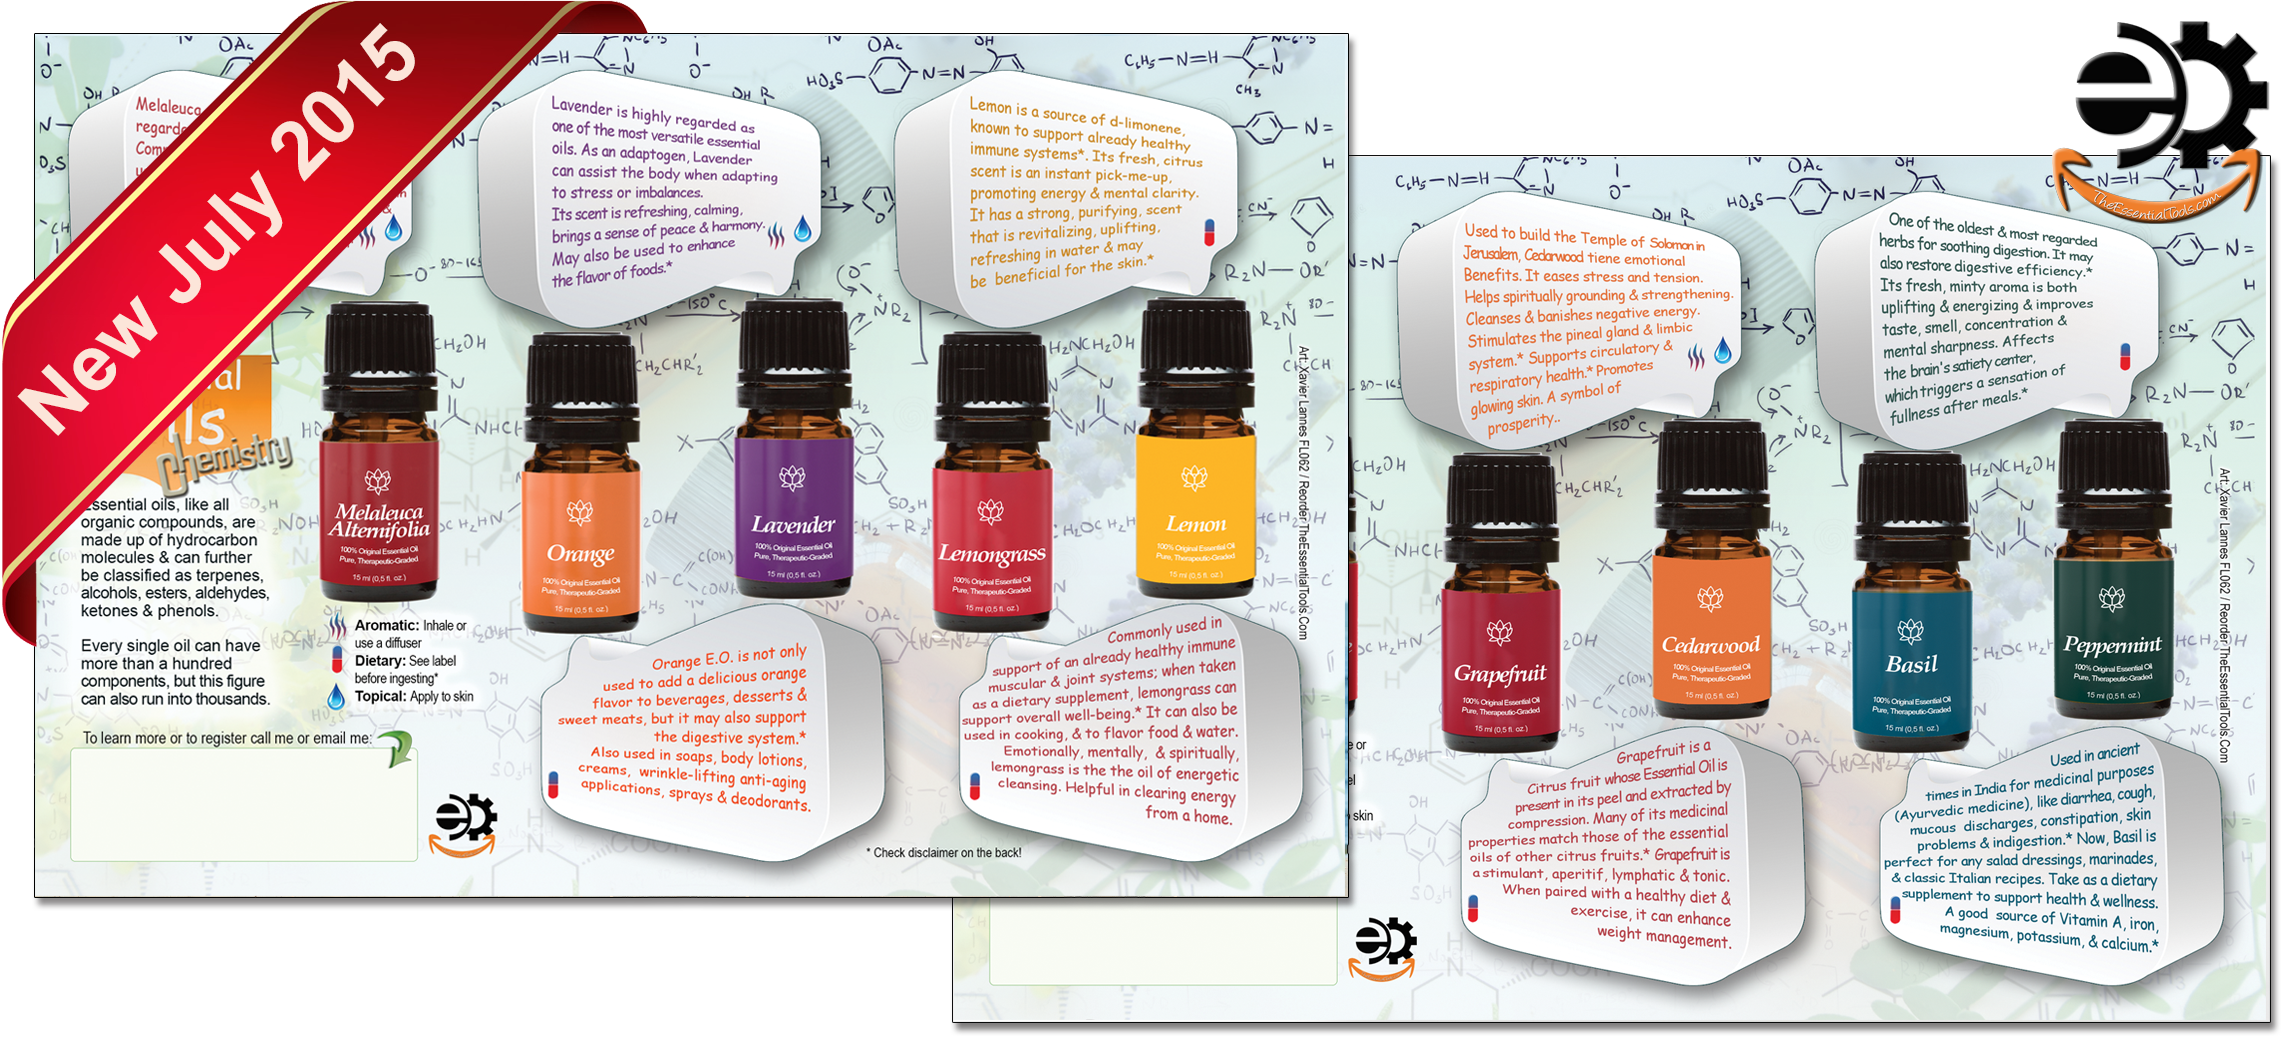 the essential tools essential oils flyers & marketing material, Invoice templates